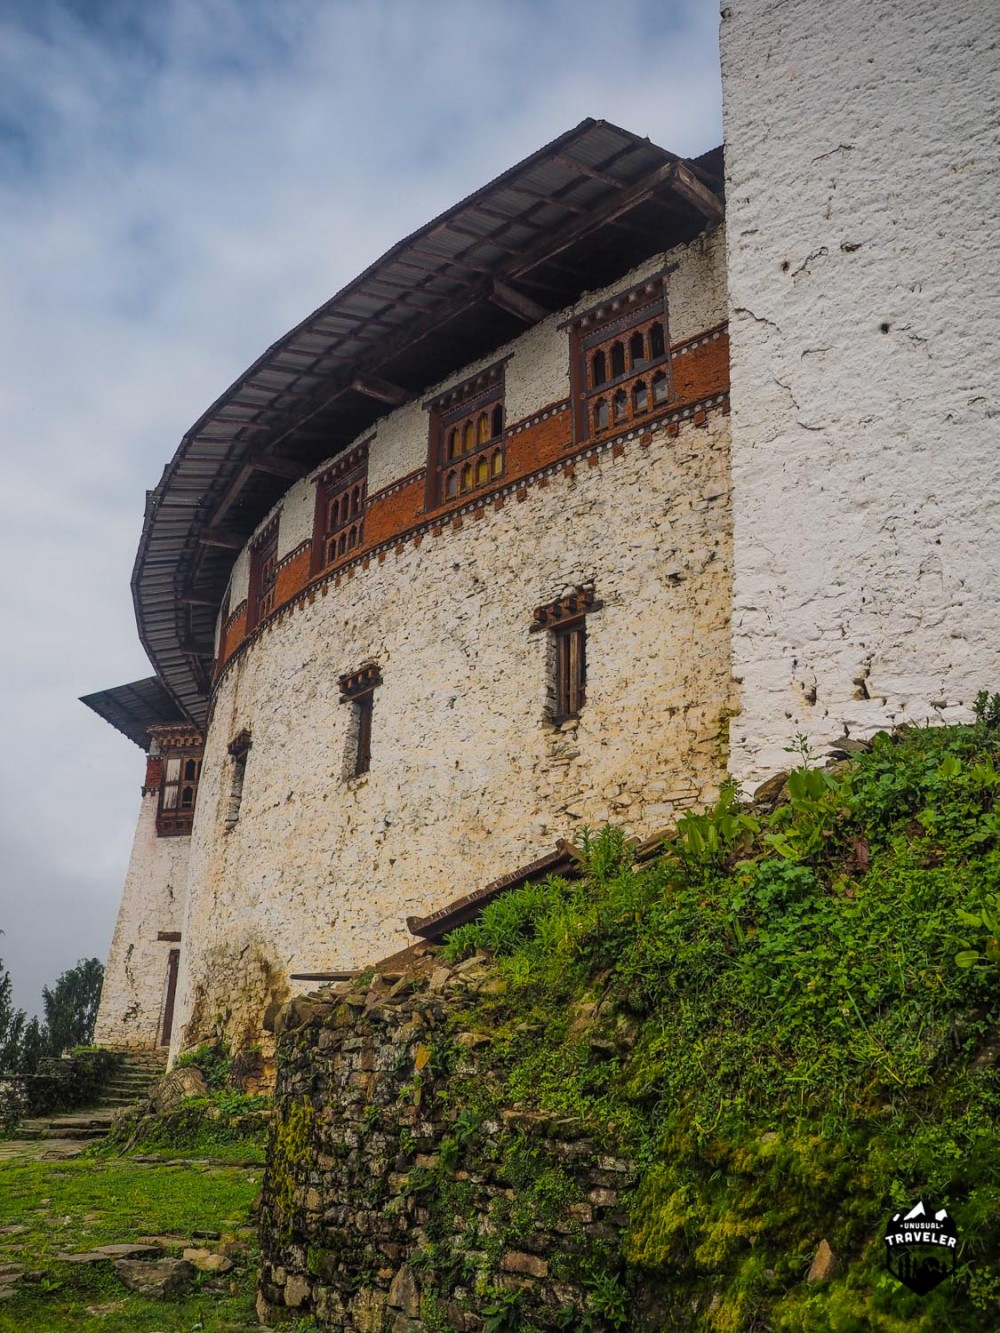 The main wall at this Dzong is different from other Dzong since this one is round